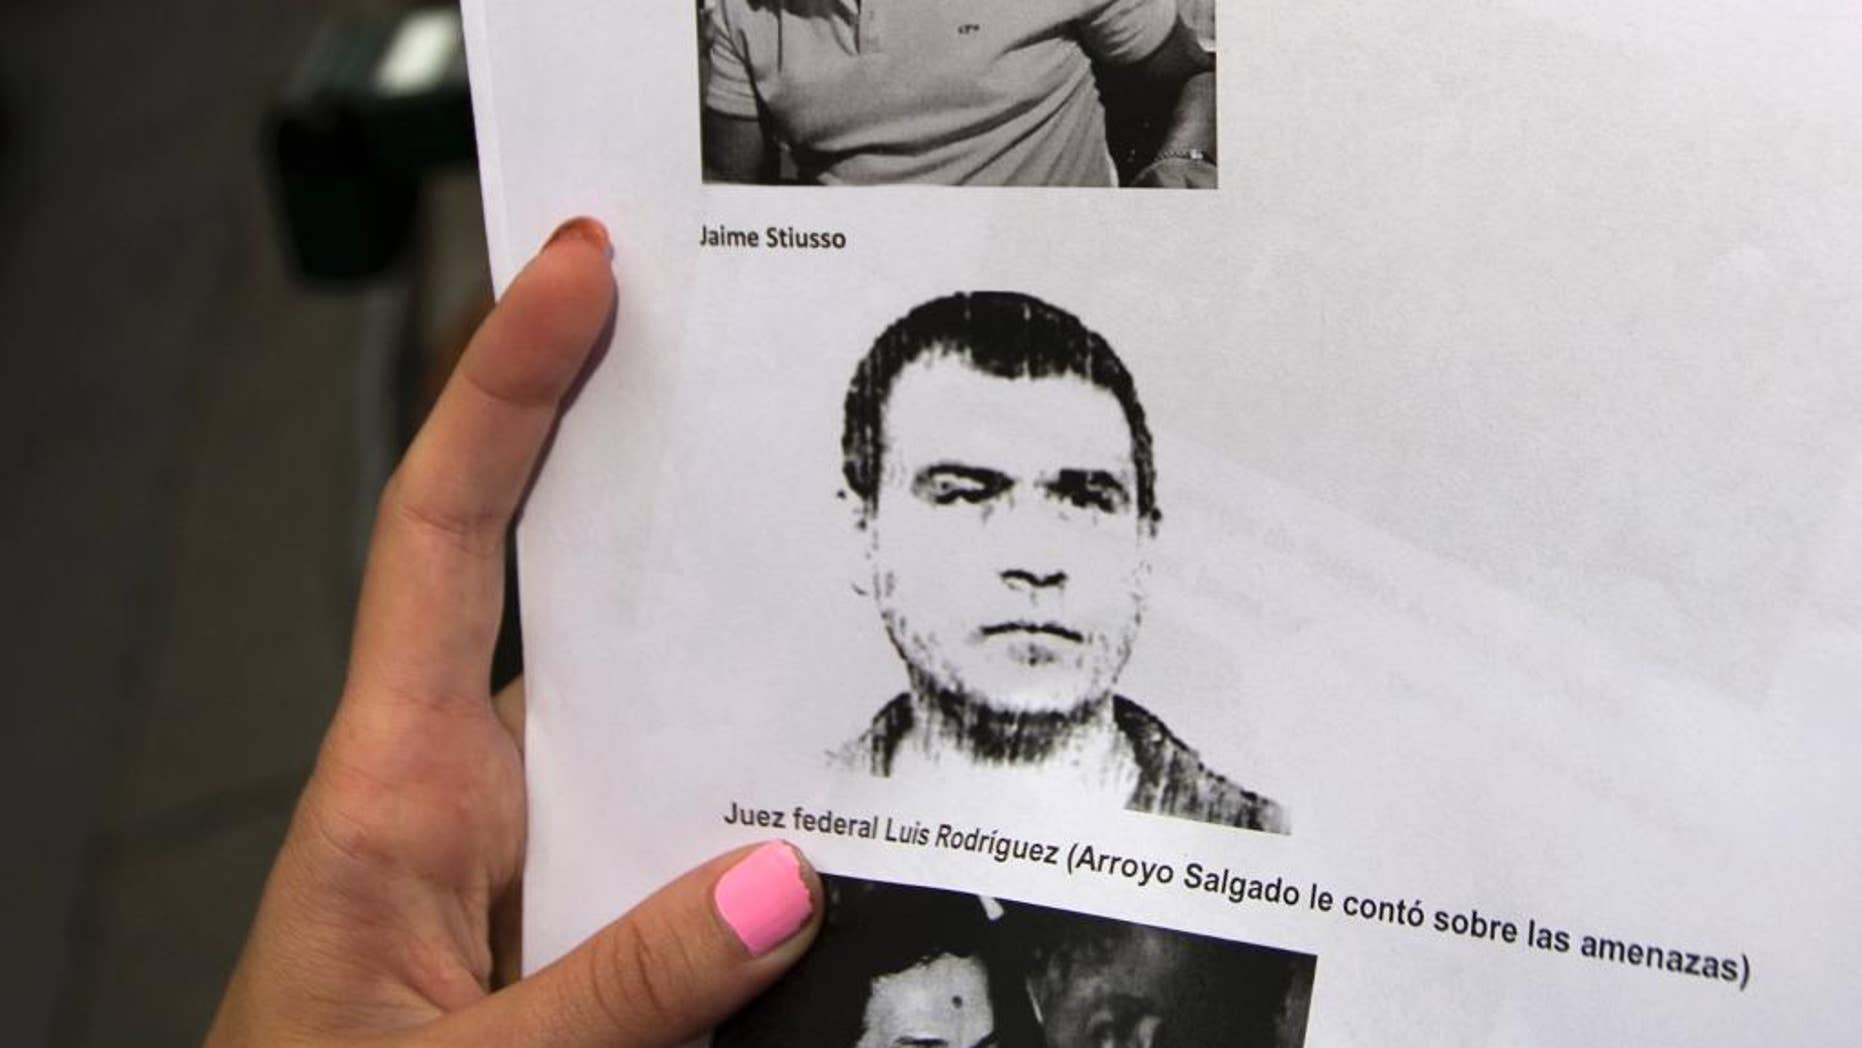 "FILE - In this Feb. 5, 2015 file photo, a reporter holds a copy of a photo of Antonio ""Jaime"" Stiuso, one of the country's most enigmatic spy chiefs, outside the prosecutor's office in Buenos Aires, Argentina. The Argentine government said on Wednesday, Oct. 7, 2015 that the former spymaster it wants to question in the mysterious death of a prosecutor traveled to the U.S. on an Italian passport. President Cristina Fernandez expressed frustration with the U.S. over Stiuso's whereabouts and said American officials had not answered requests to locate him. (AP Photo/Rodrigo Abd, File)"